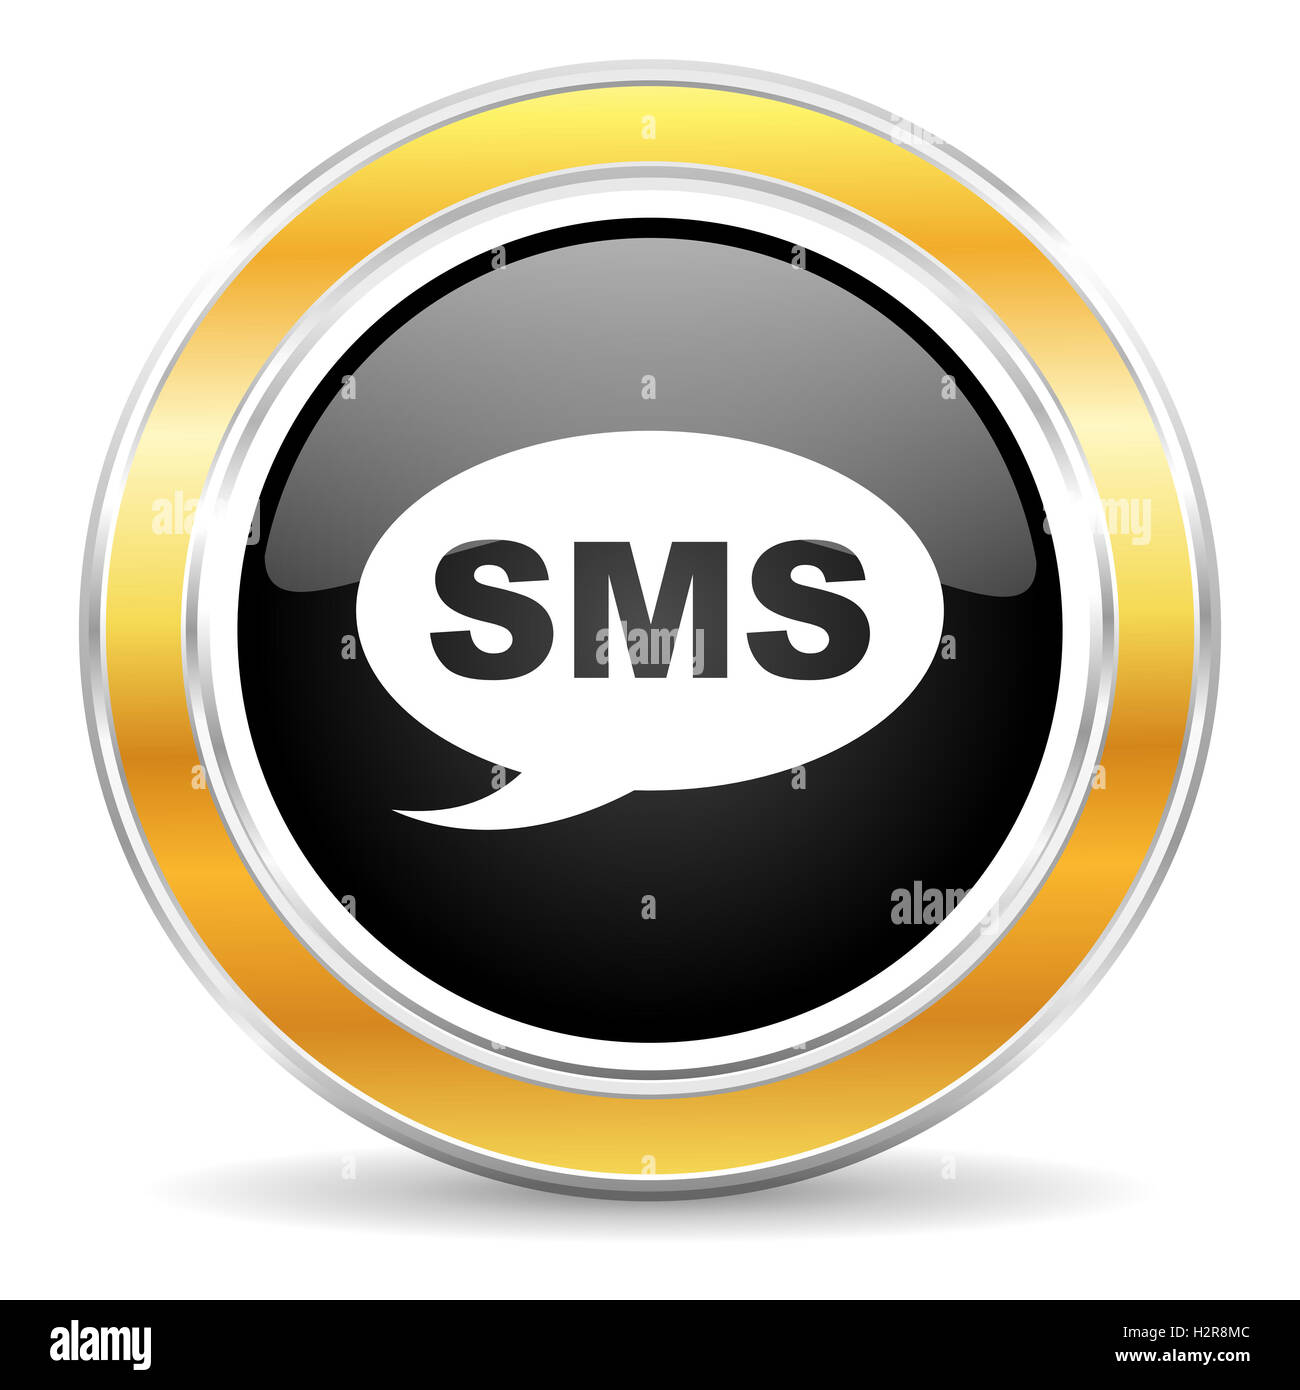 sms icon - Stock Image